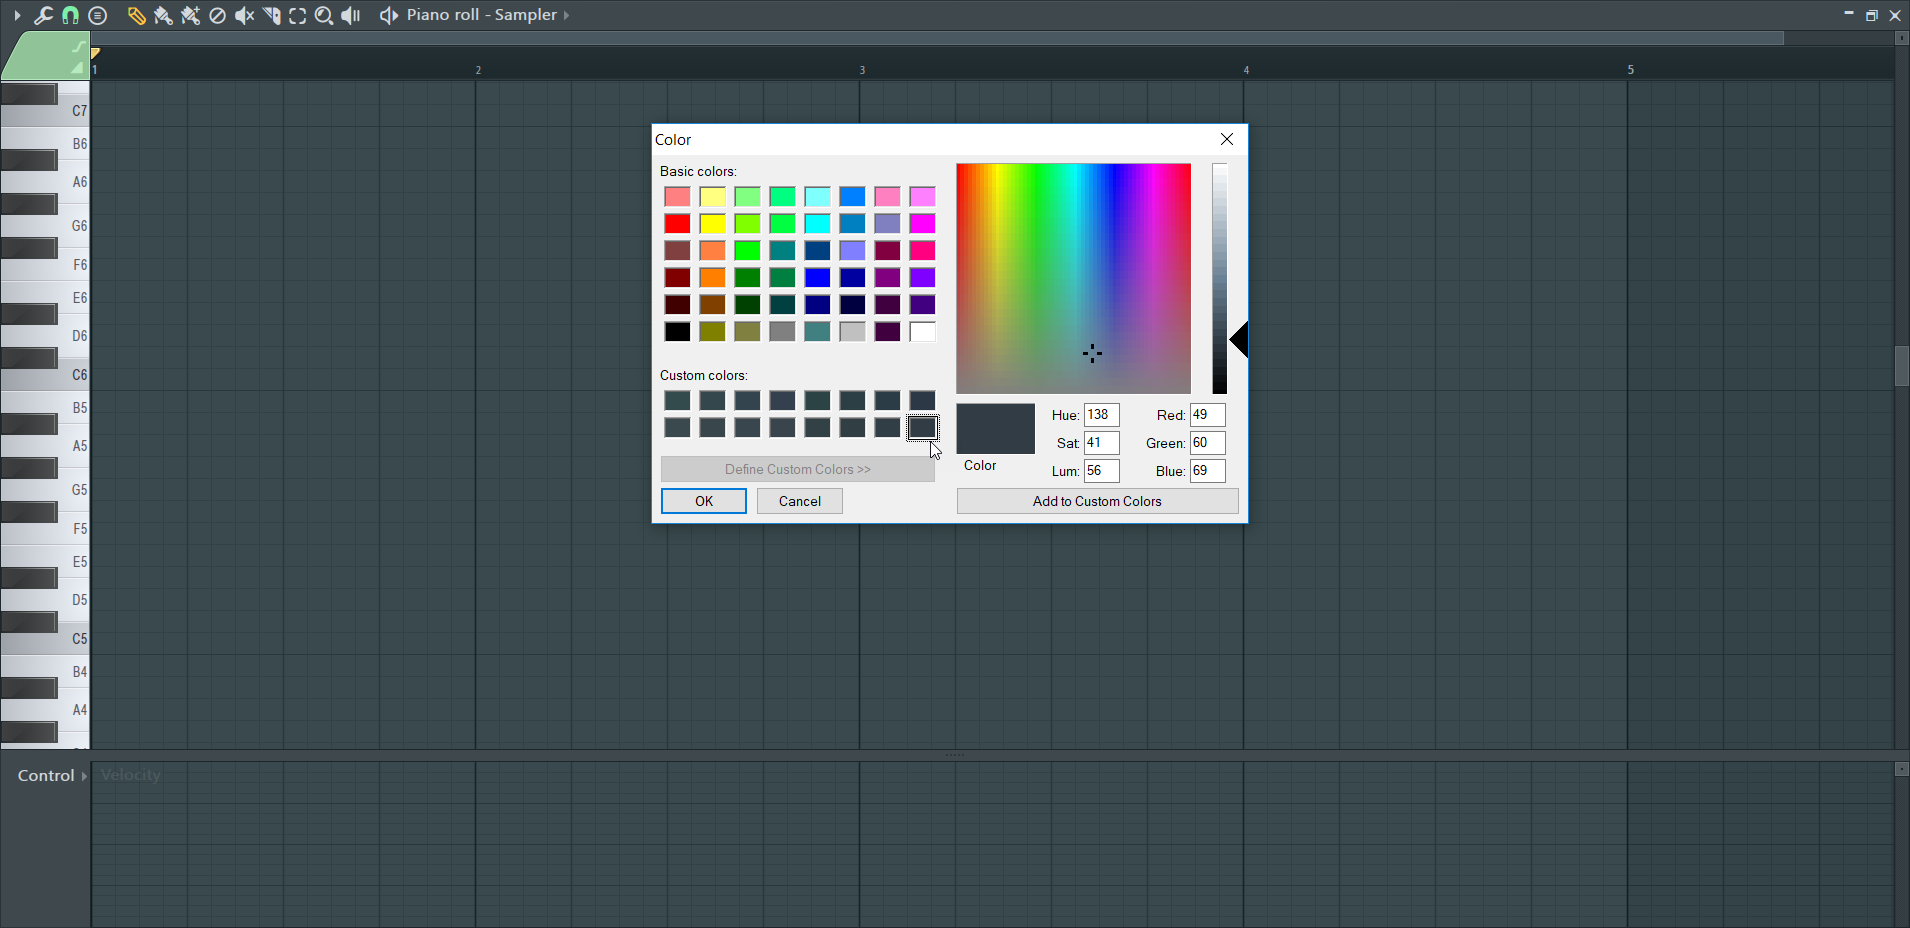 How To Change The Background Color of FL Studio's Piano Roll and Playlist_3 (Grid Color Select...png